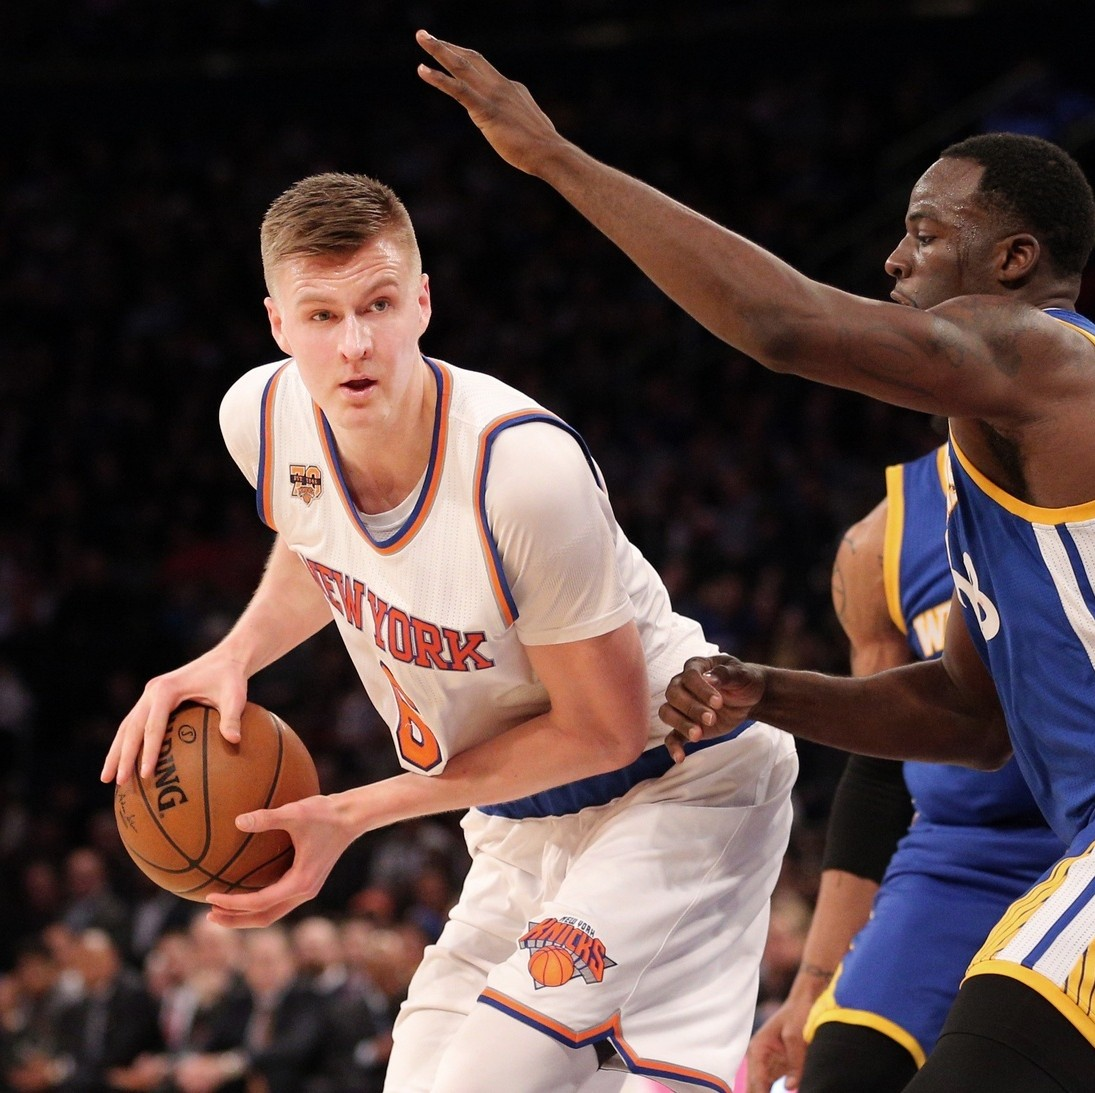 How-kristaps-porzingis-can-make-the-triangle-offense-work-for-him-and-the-knicks-1490629166.jpg?crop=0.6686159844054581xw:1xh;0